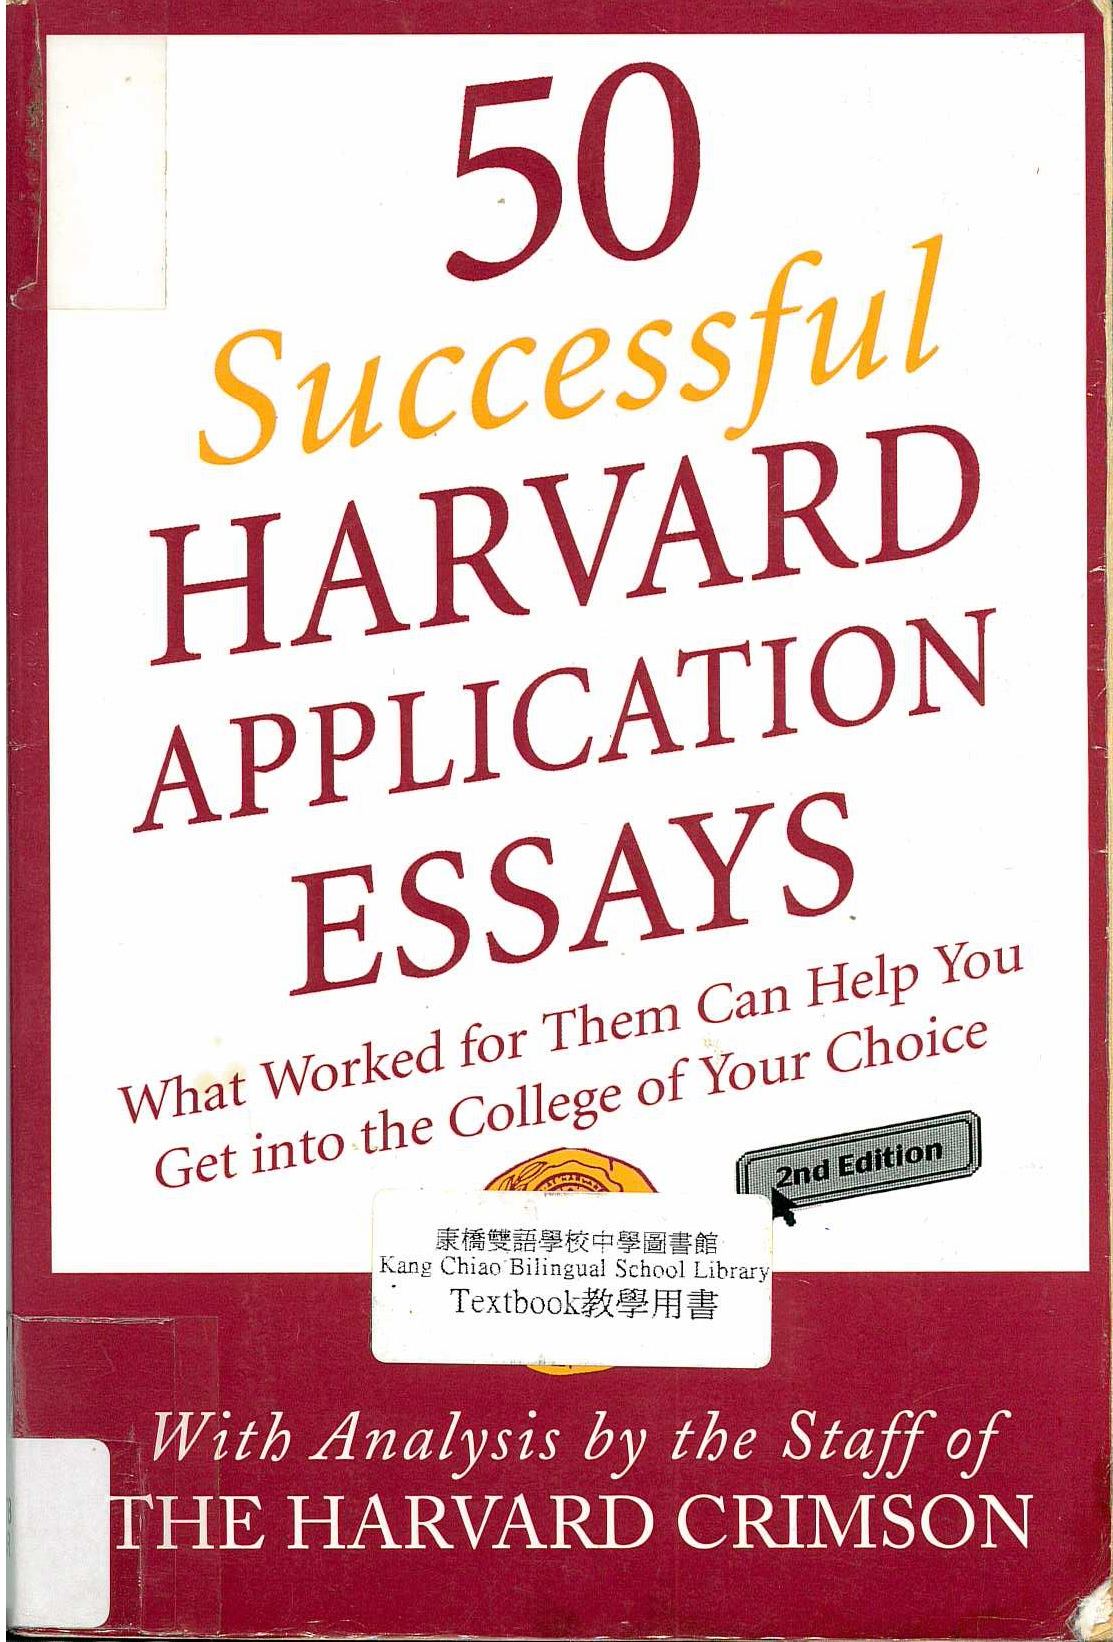 50 successful Harvard application essays  : what worked for them can help you get into the college of your choice